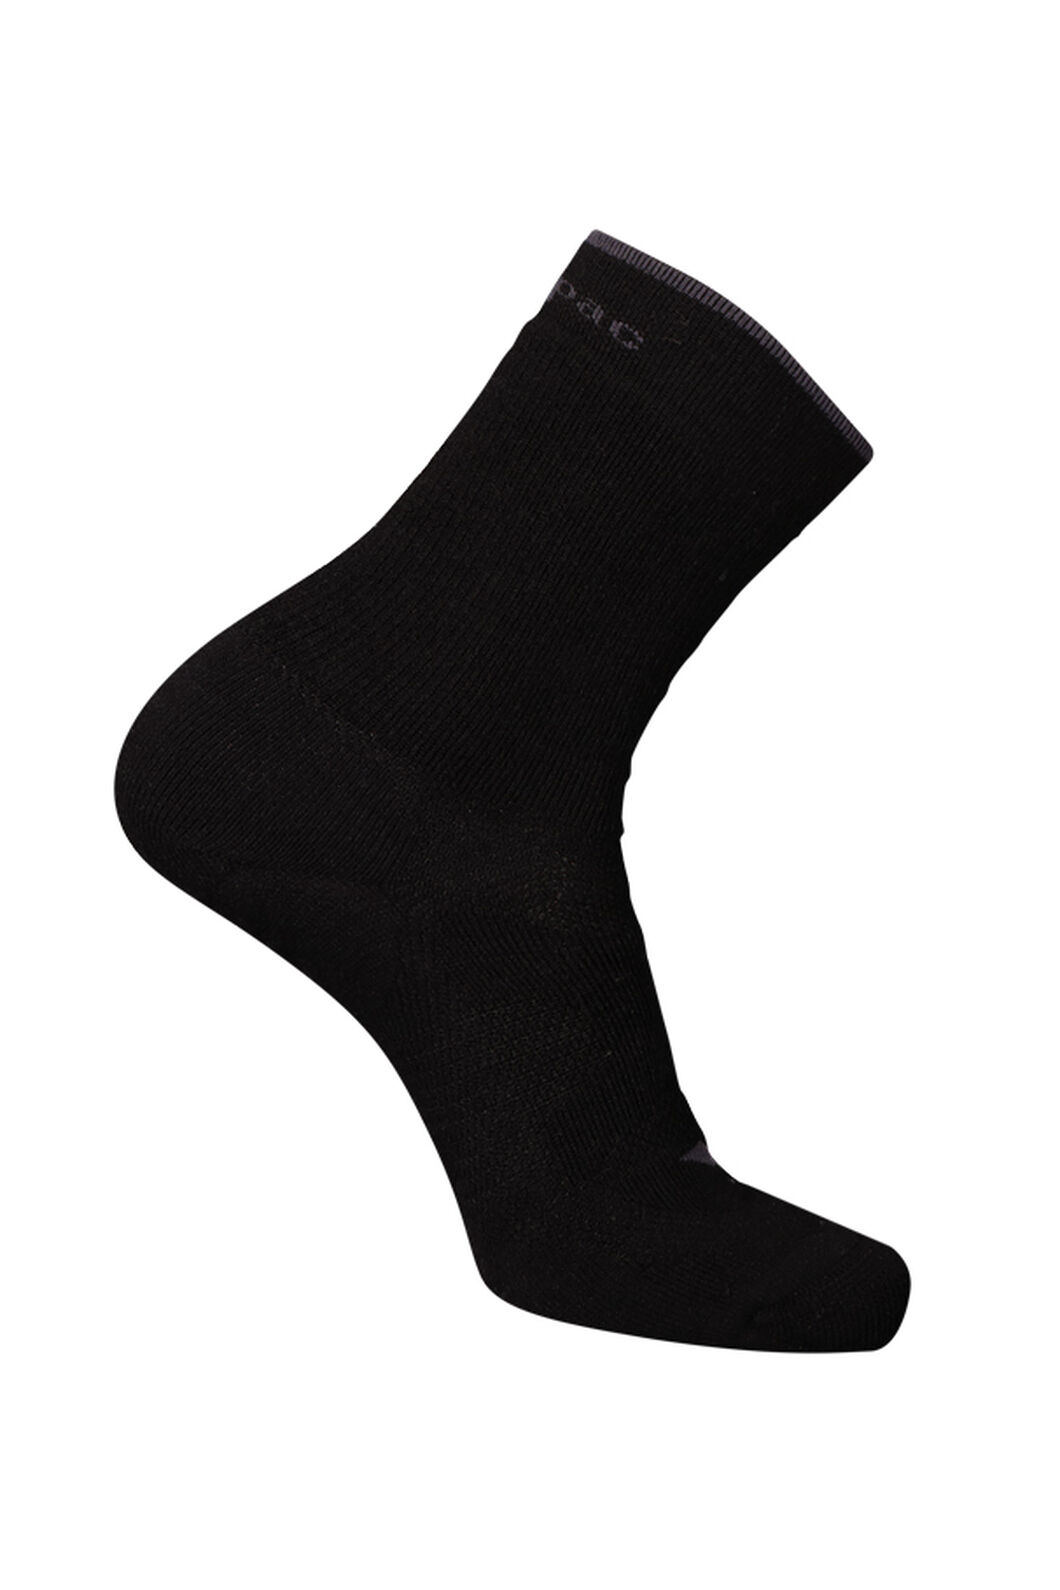 Macpac Merino Hiker Socks, Black, hi-res